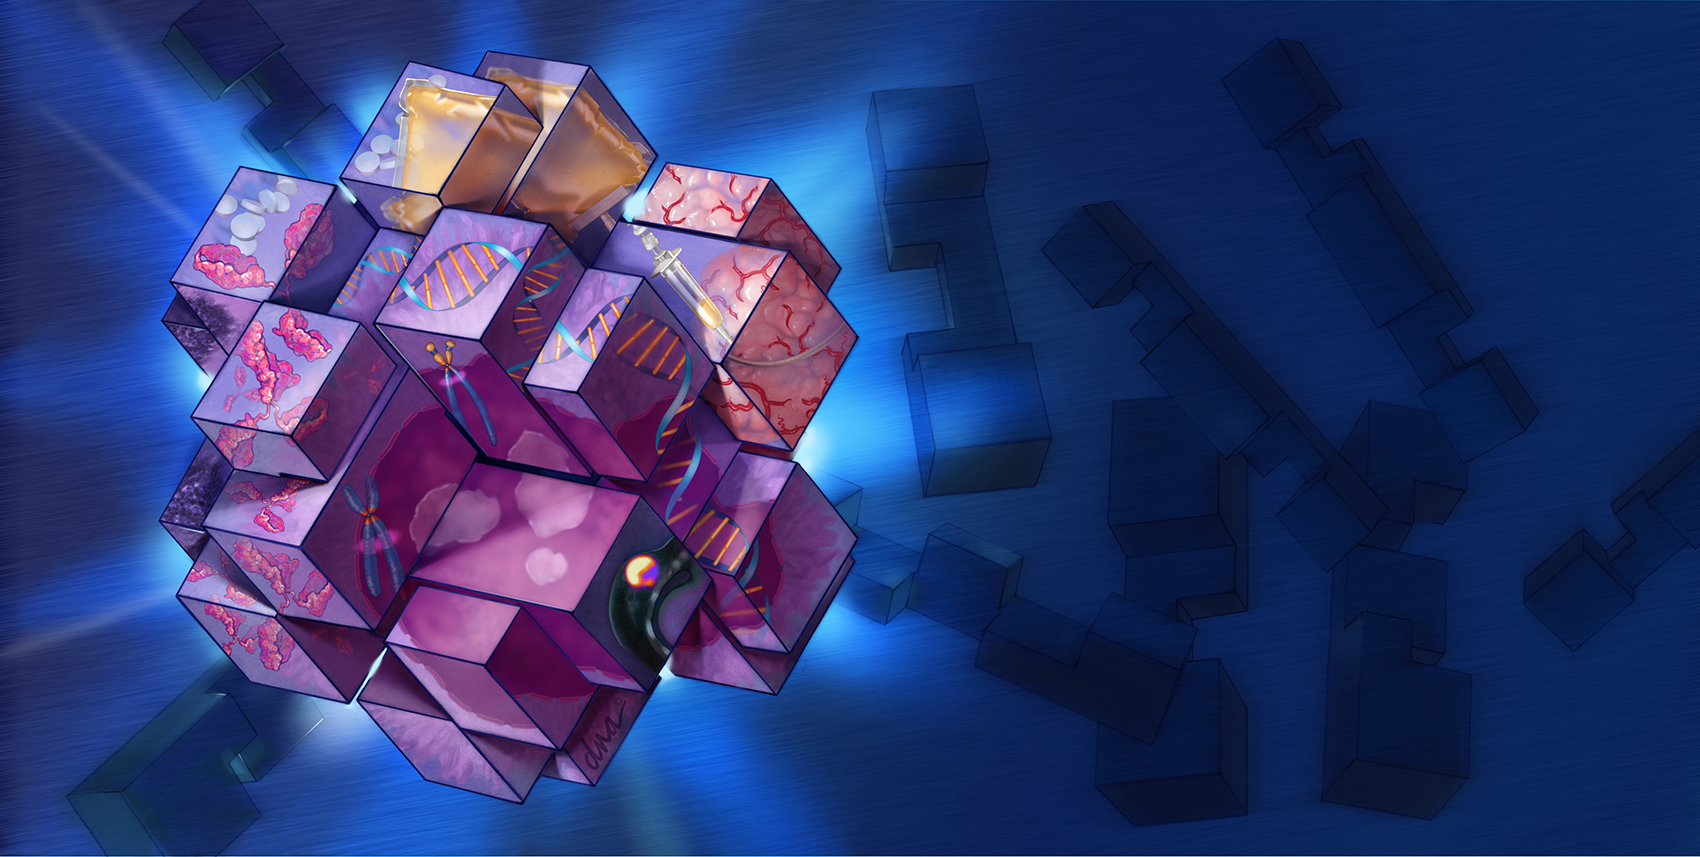 Solving the Puzzle of Cancer